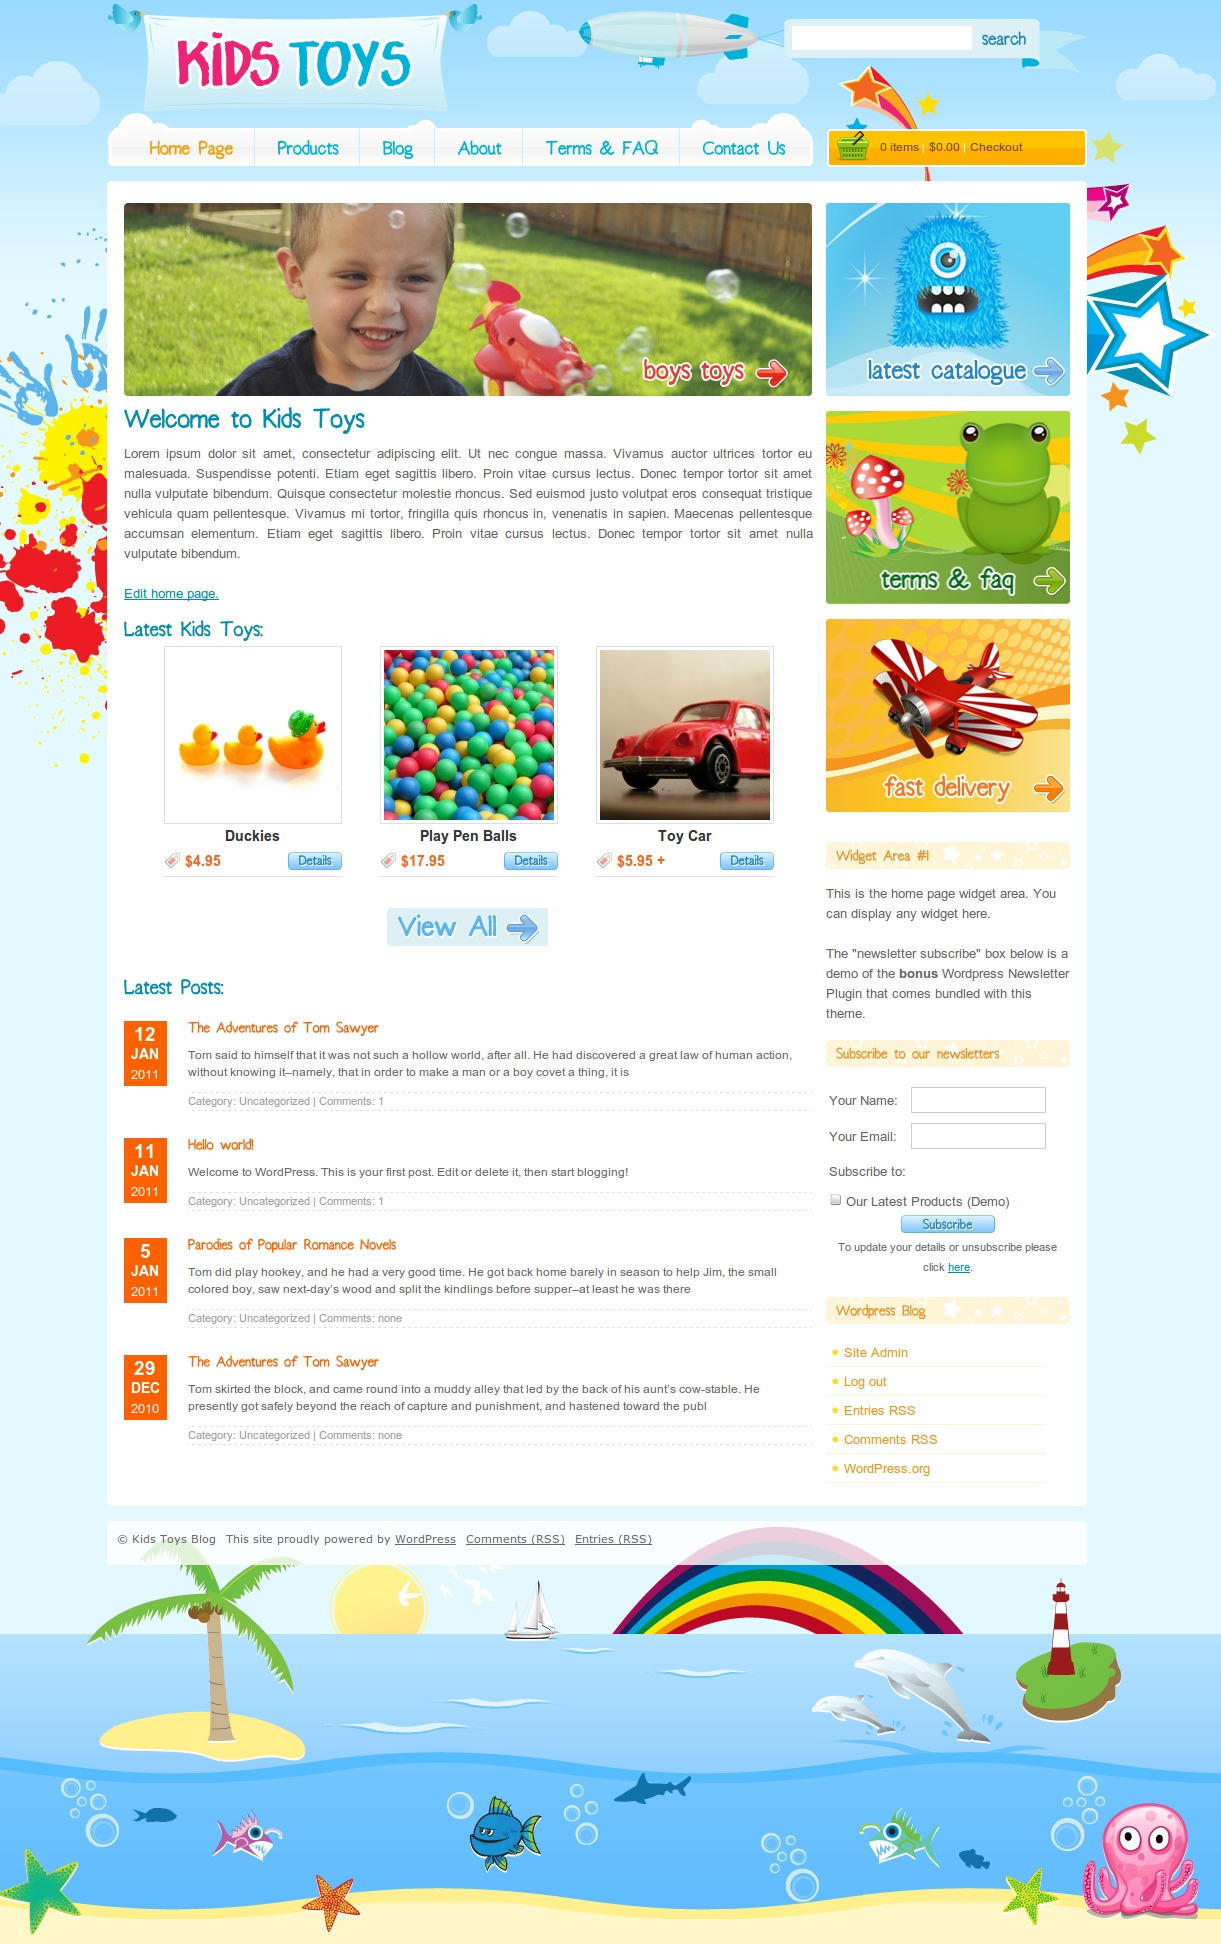 Kids Toys - WordPress Shop & Newsletter - Full screenshot of the home page.